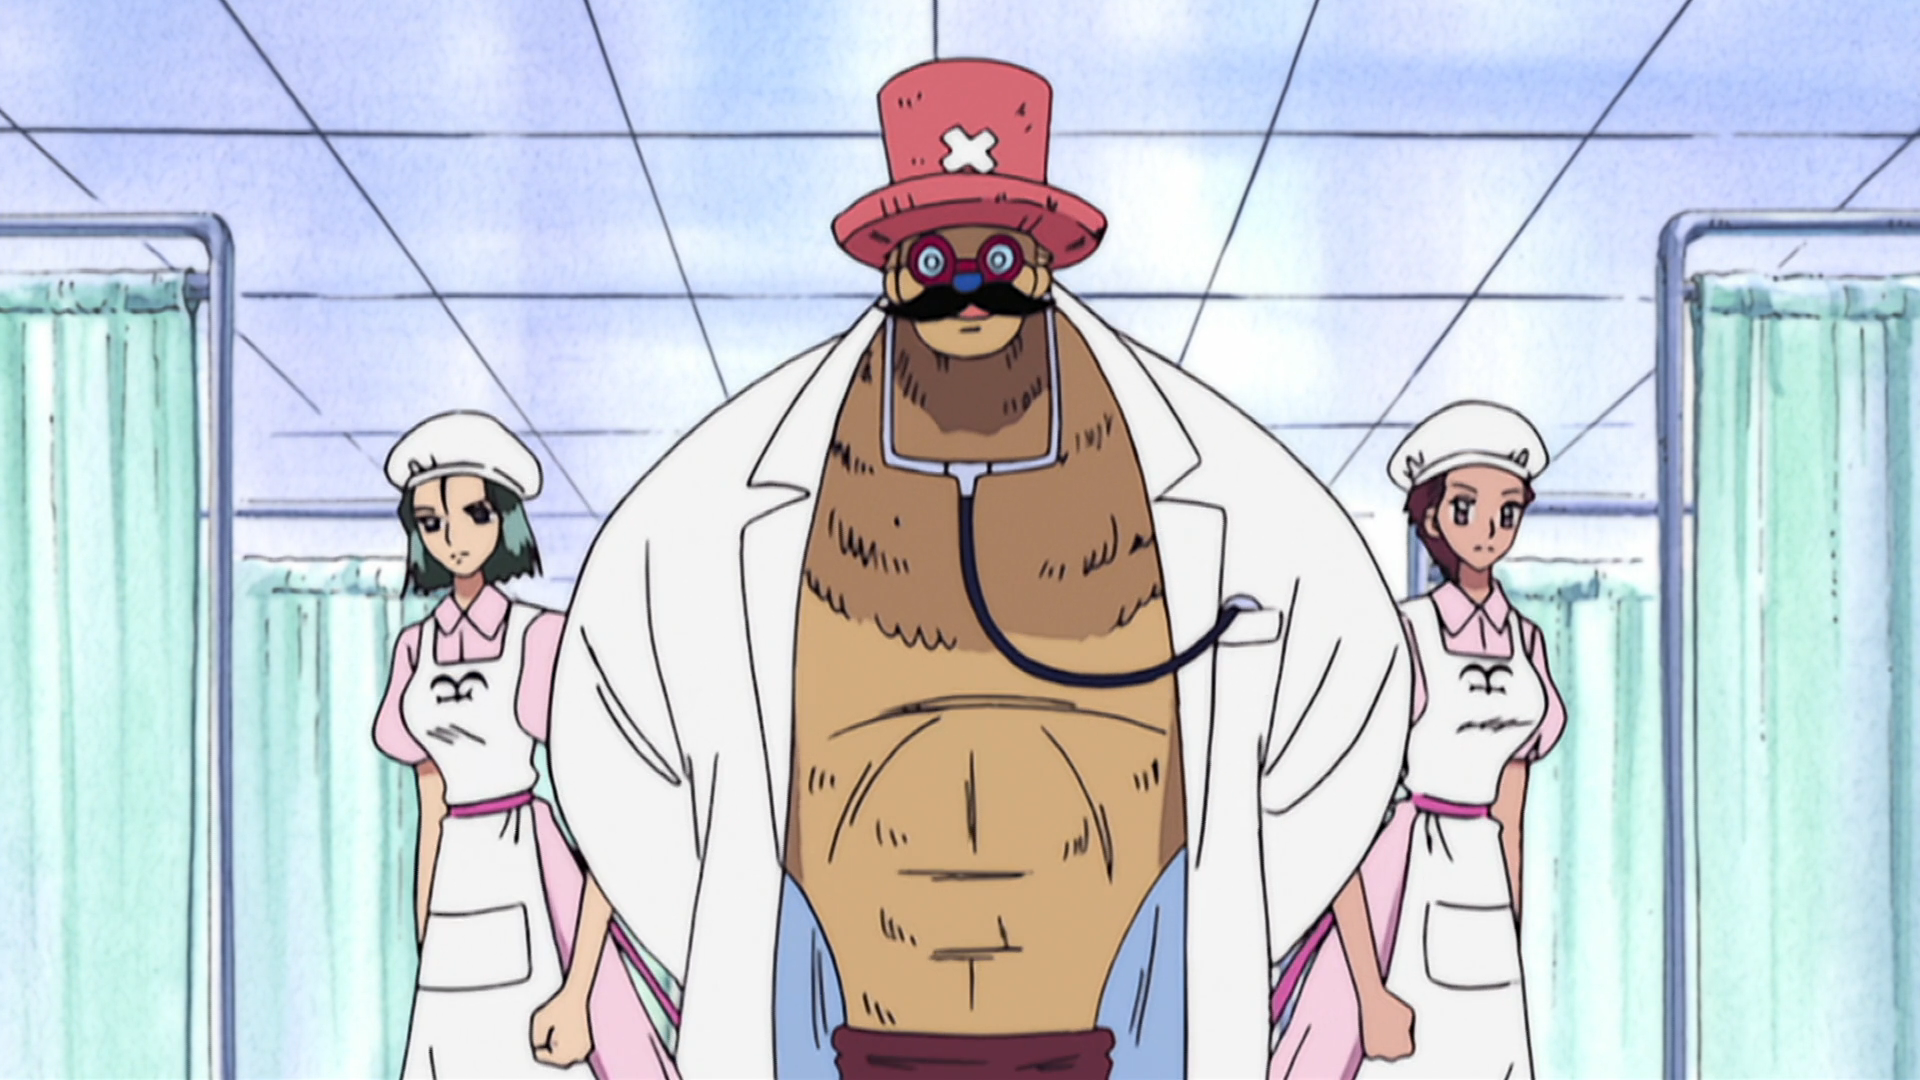 5 Reasons why I consider One Piece G8 Arc to be Canon